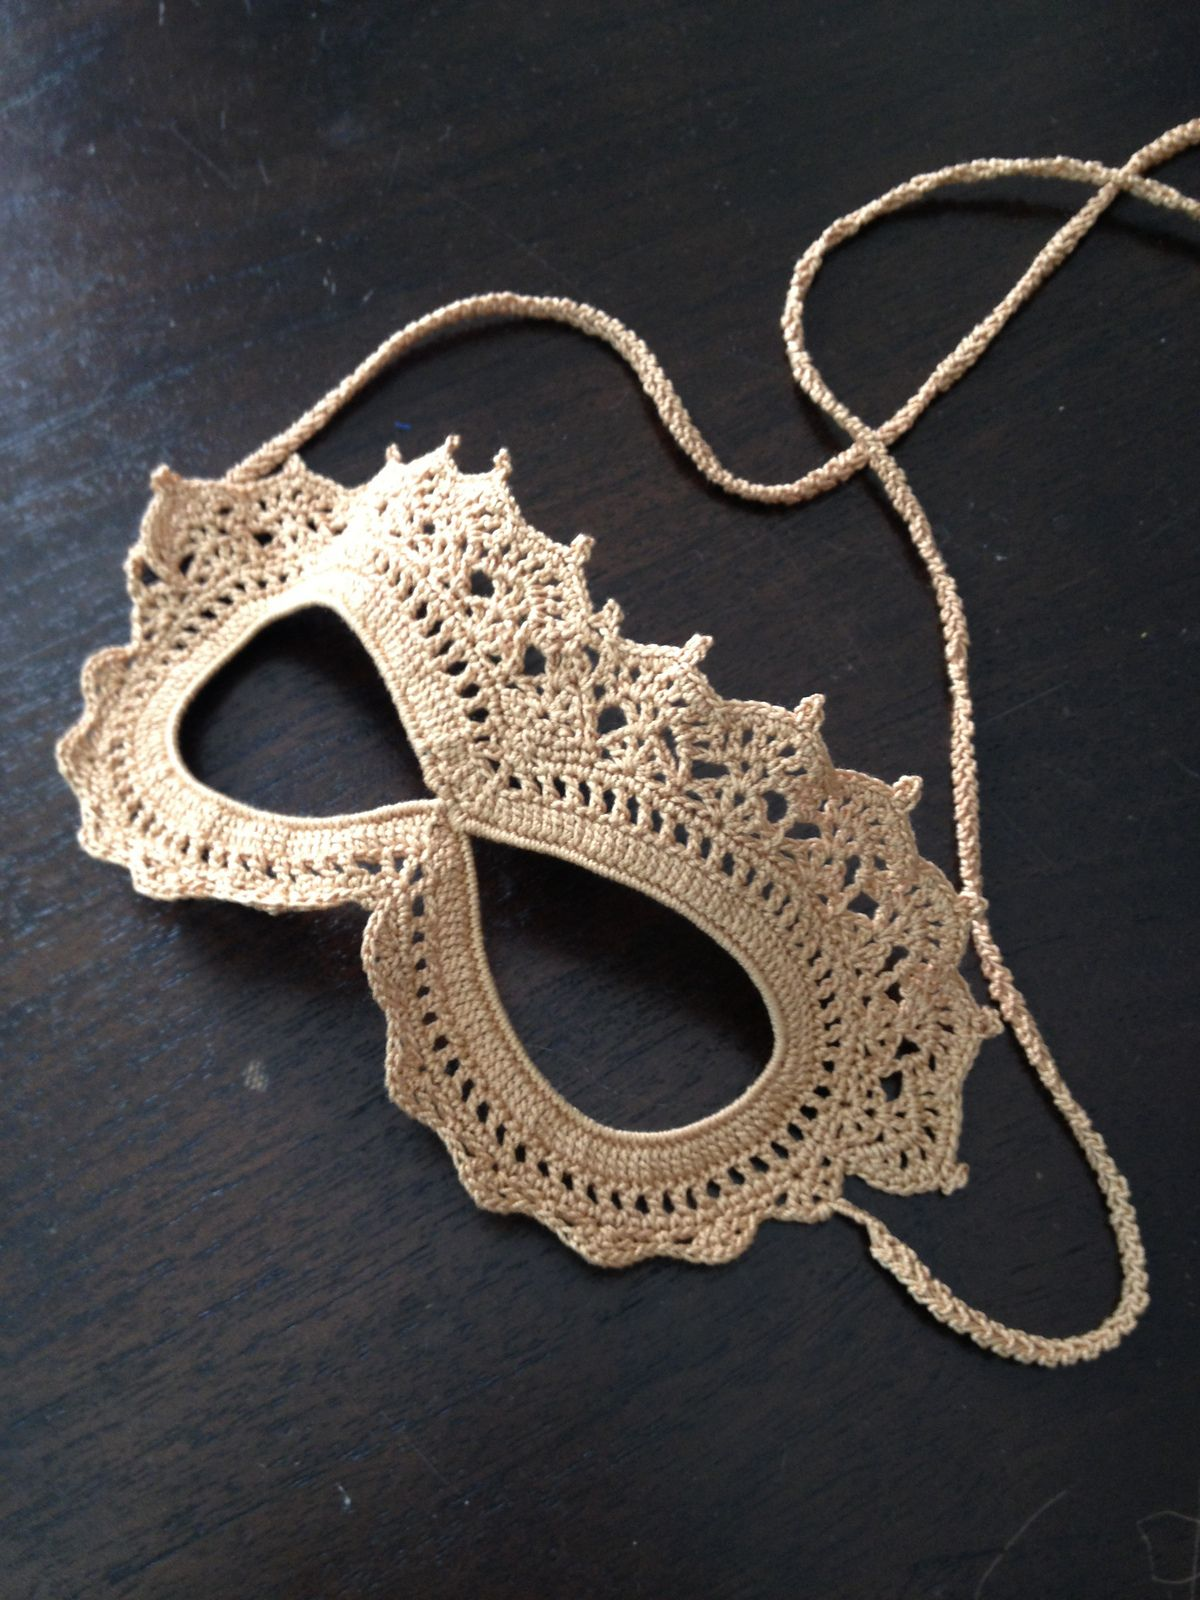 Crochet Lace Masquerade Mask Pattern By Arhoglen Knits And Bits Of